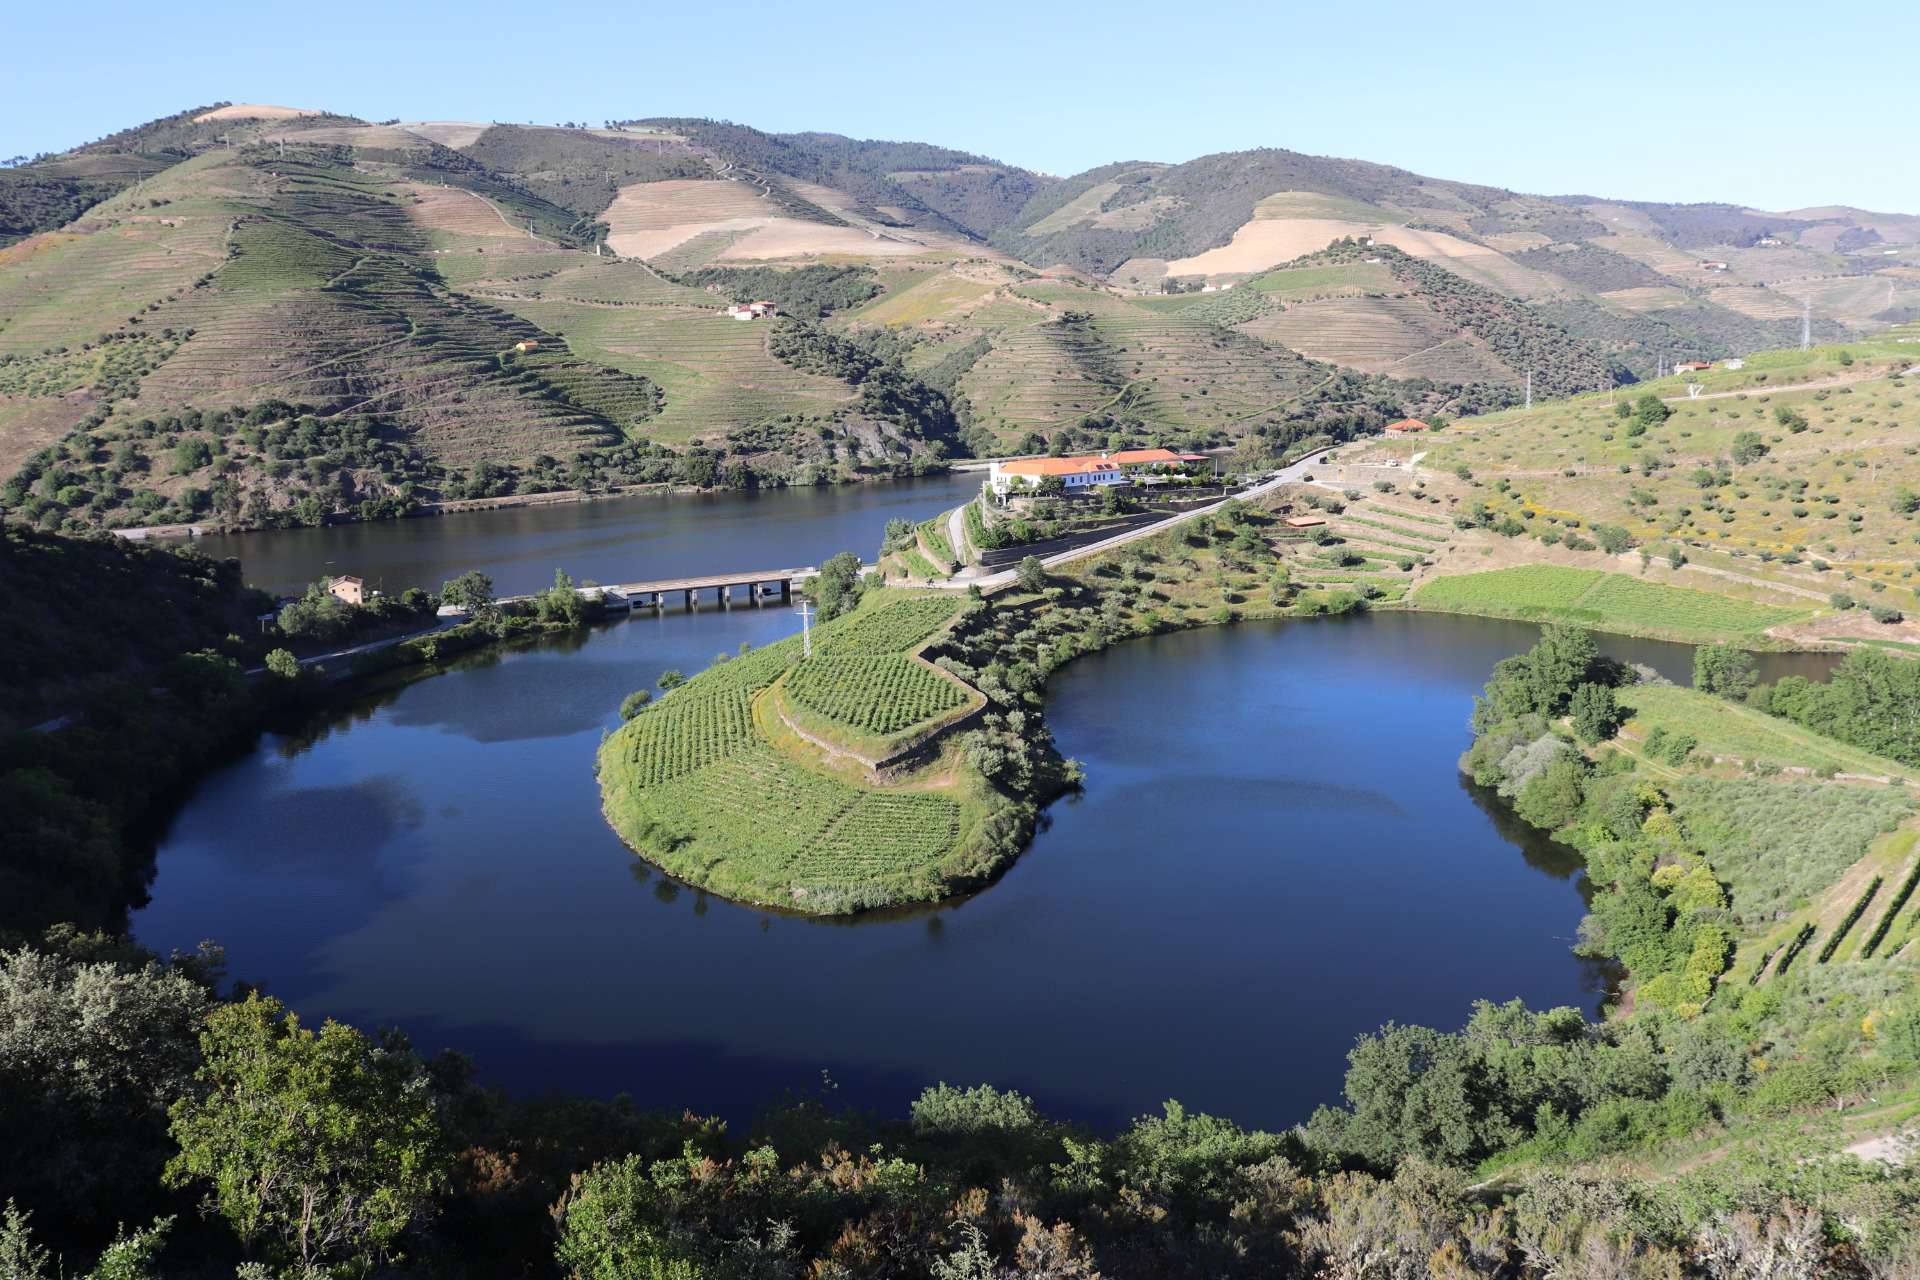 The Tedo and Douro rivers – what splendid weather!